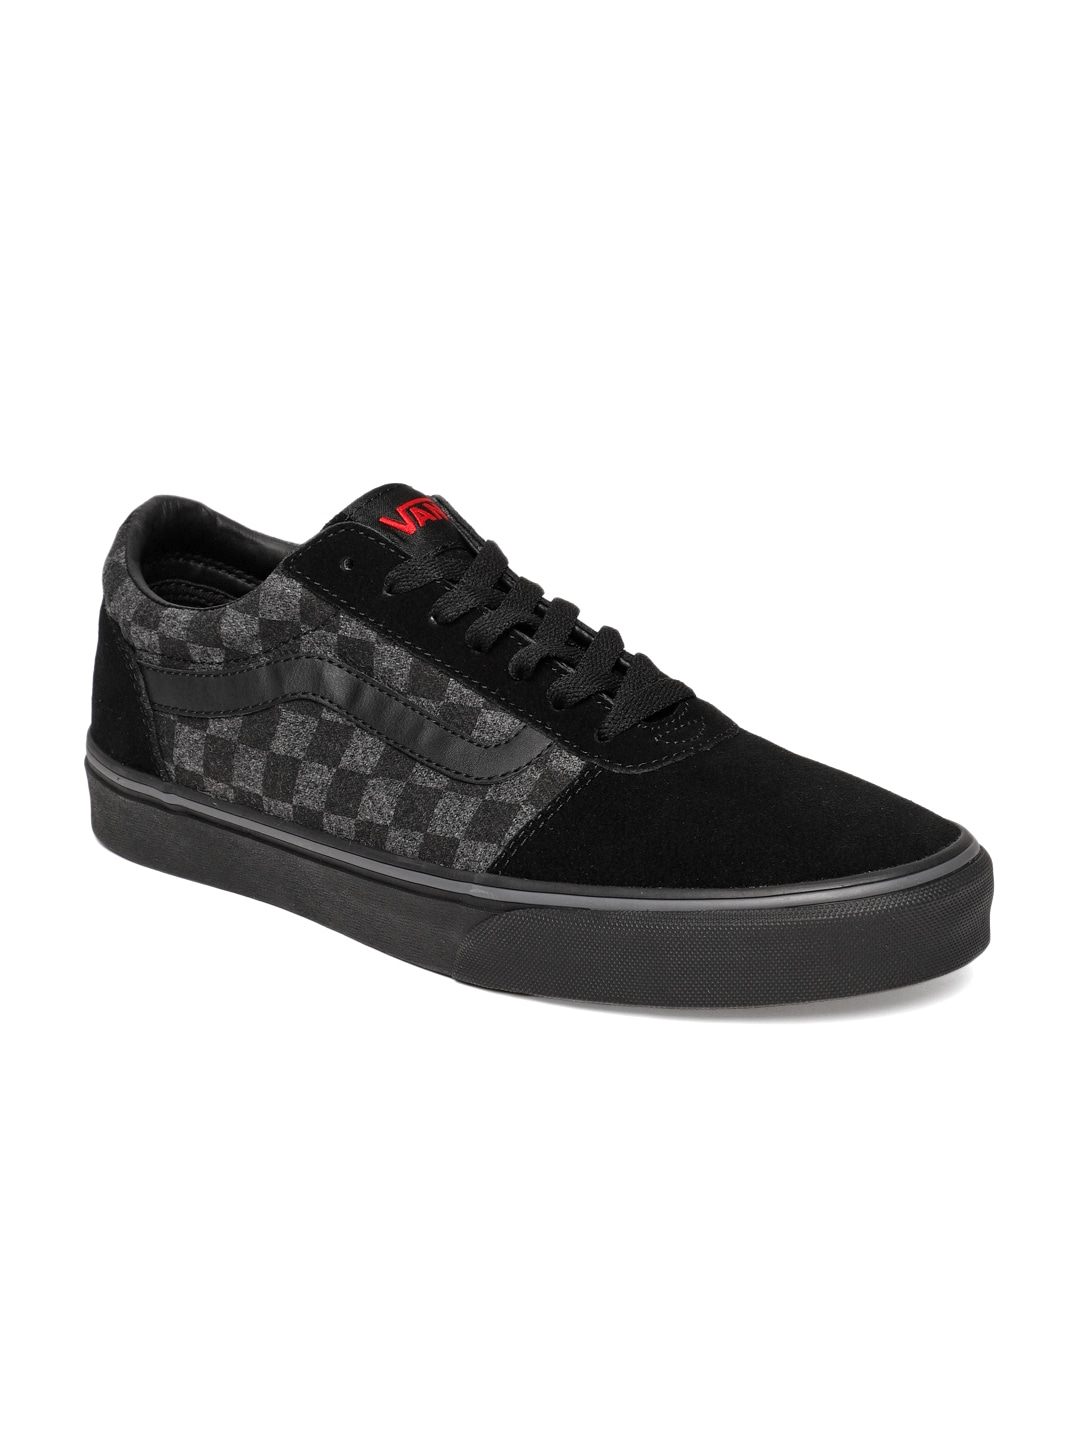 Vans Shoes For Men - Buy Vans Shoes For Men online in India fa9530f1334